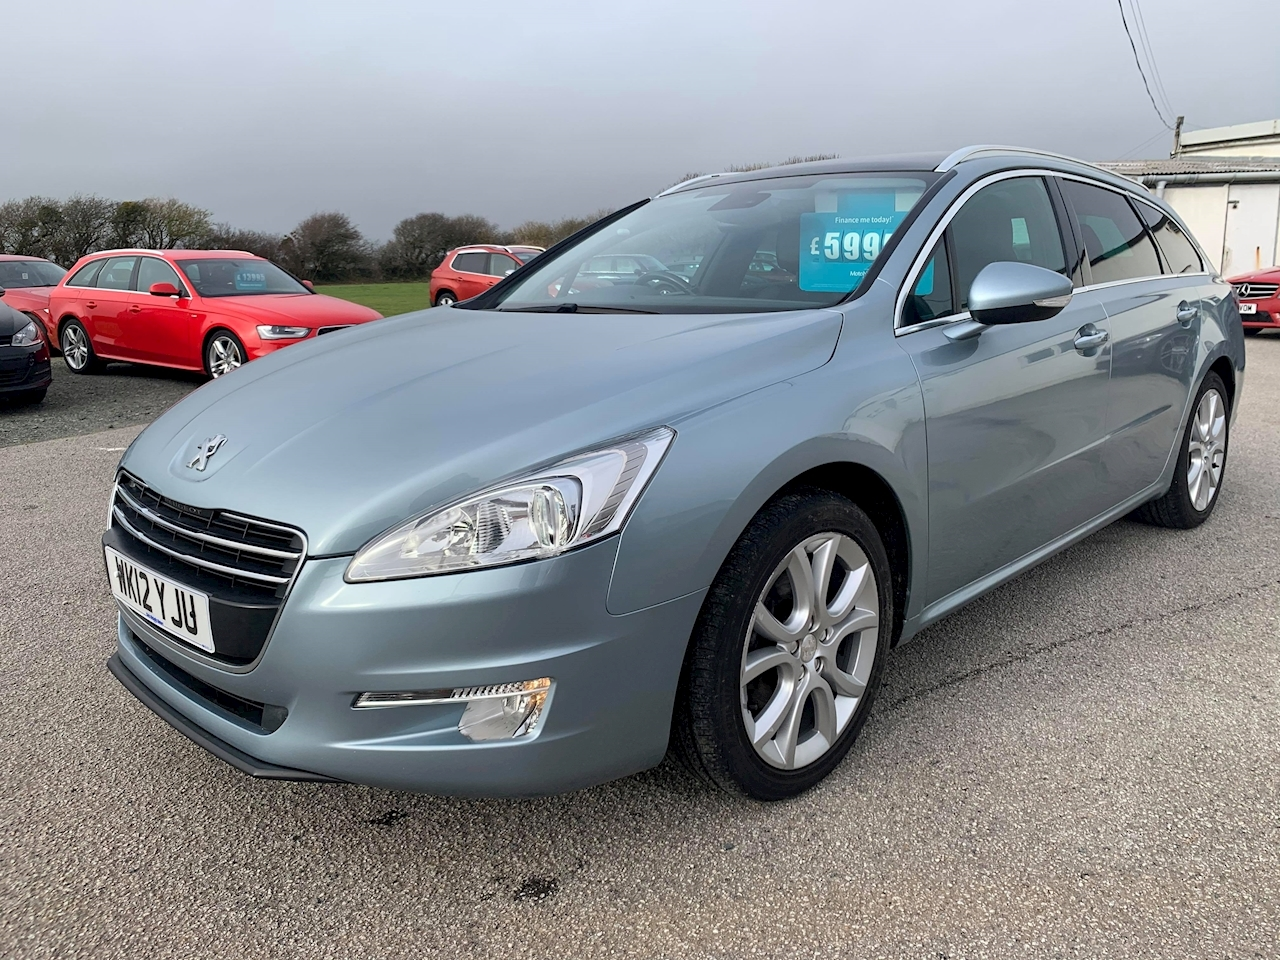 Peugeot 508 Hdi Sw Allure Estate 2.0 Manual Diesel